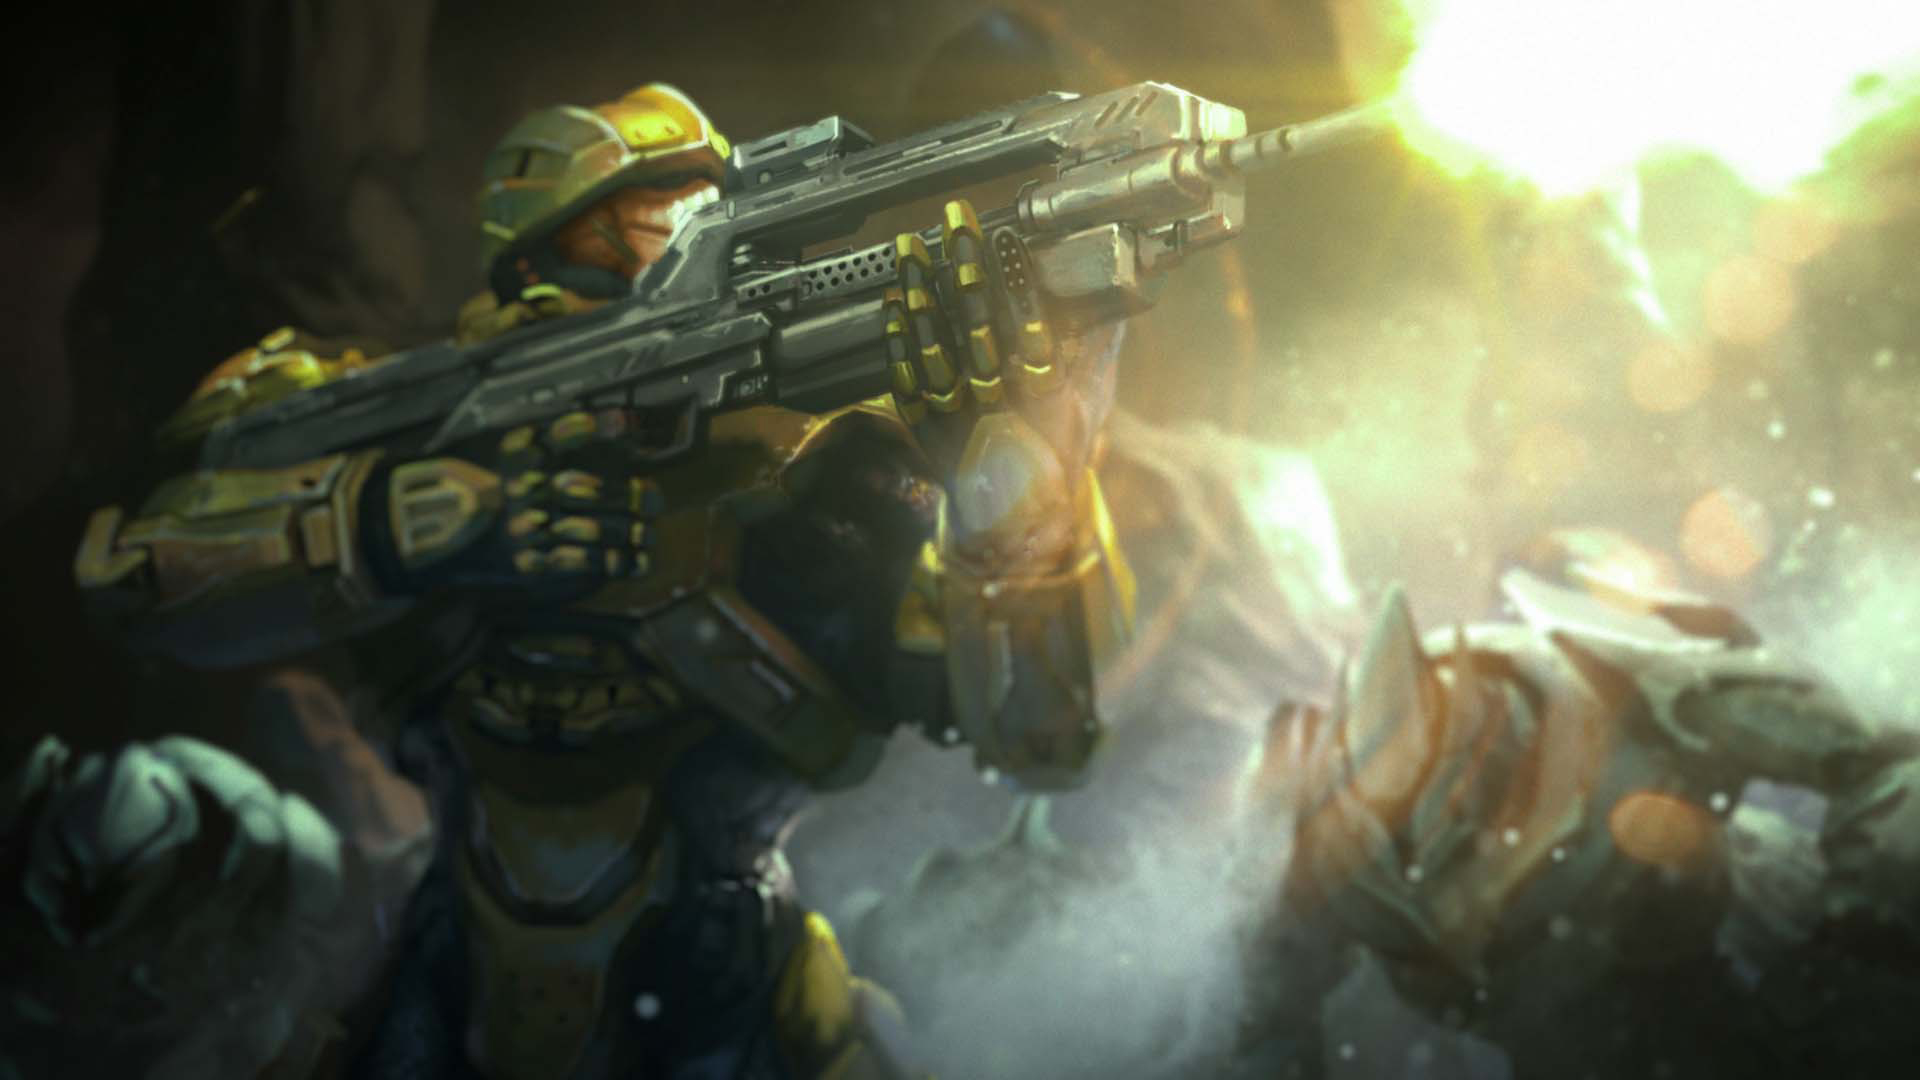 Halo Spartan Assault on Steam